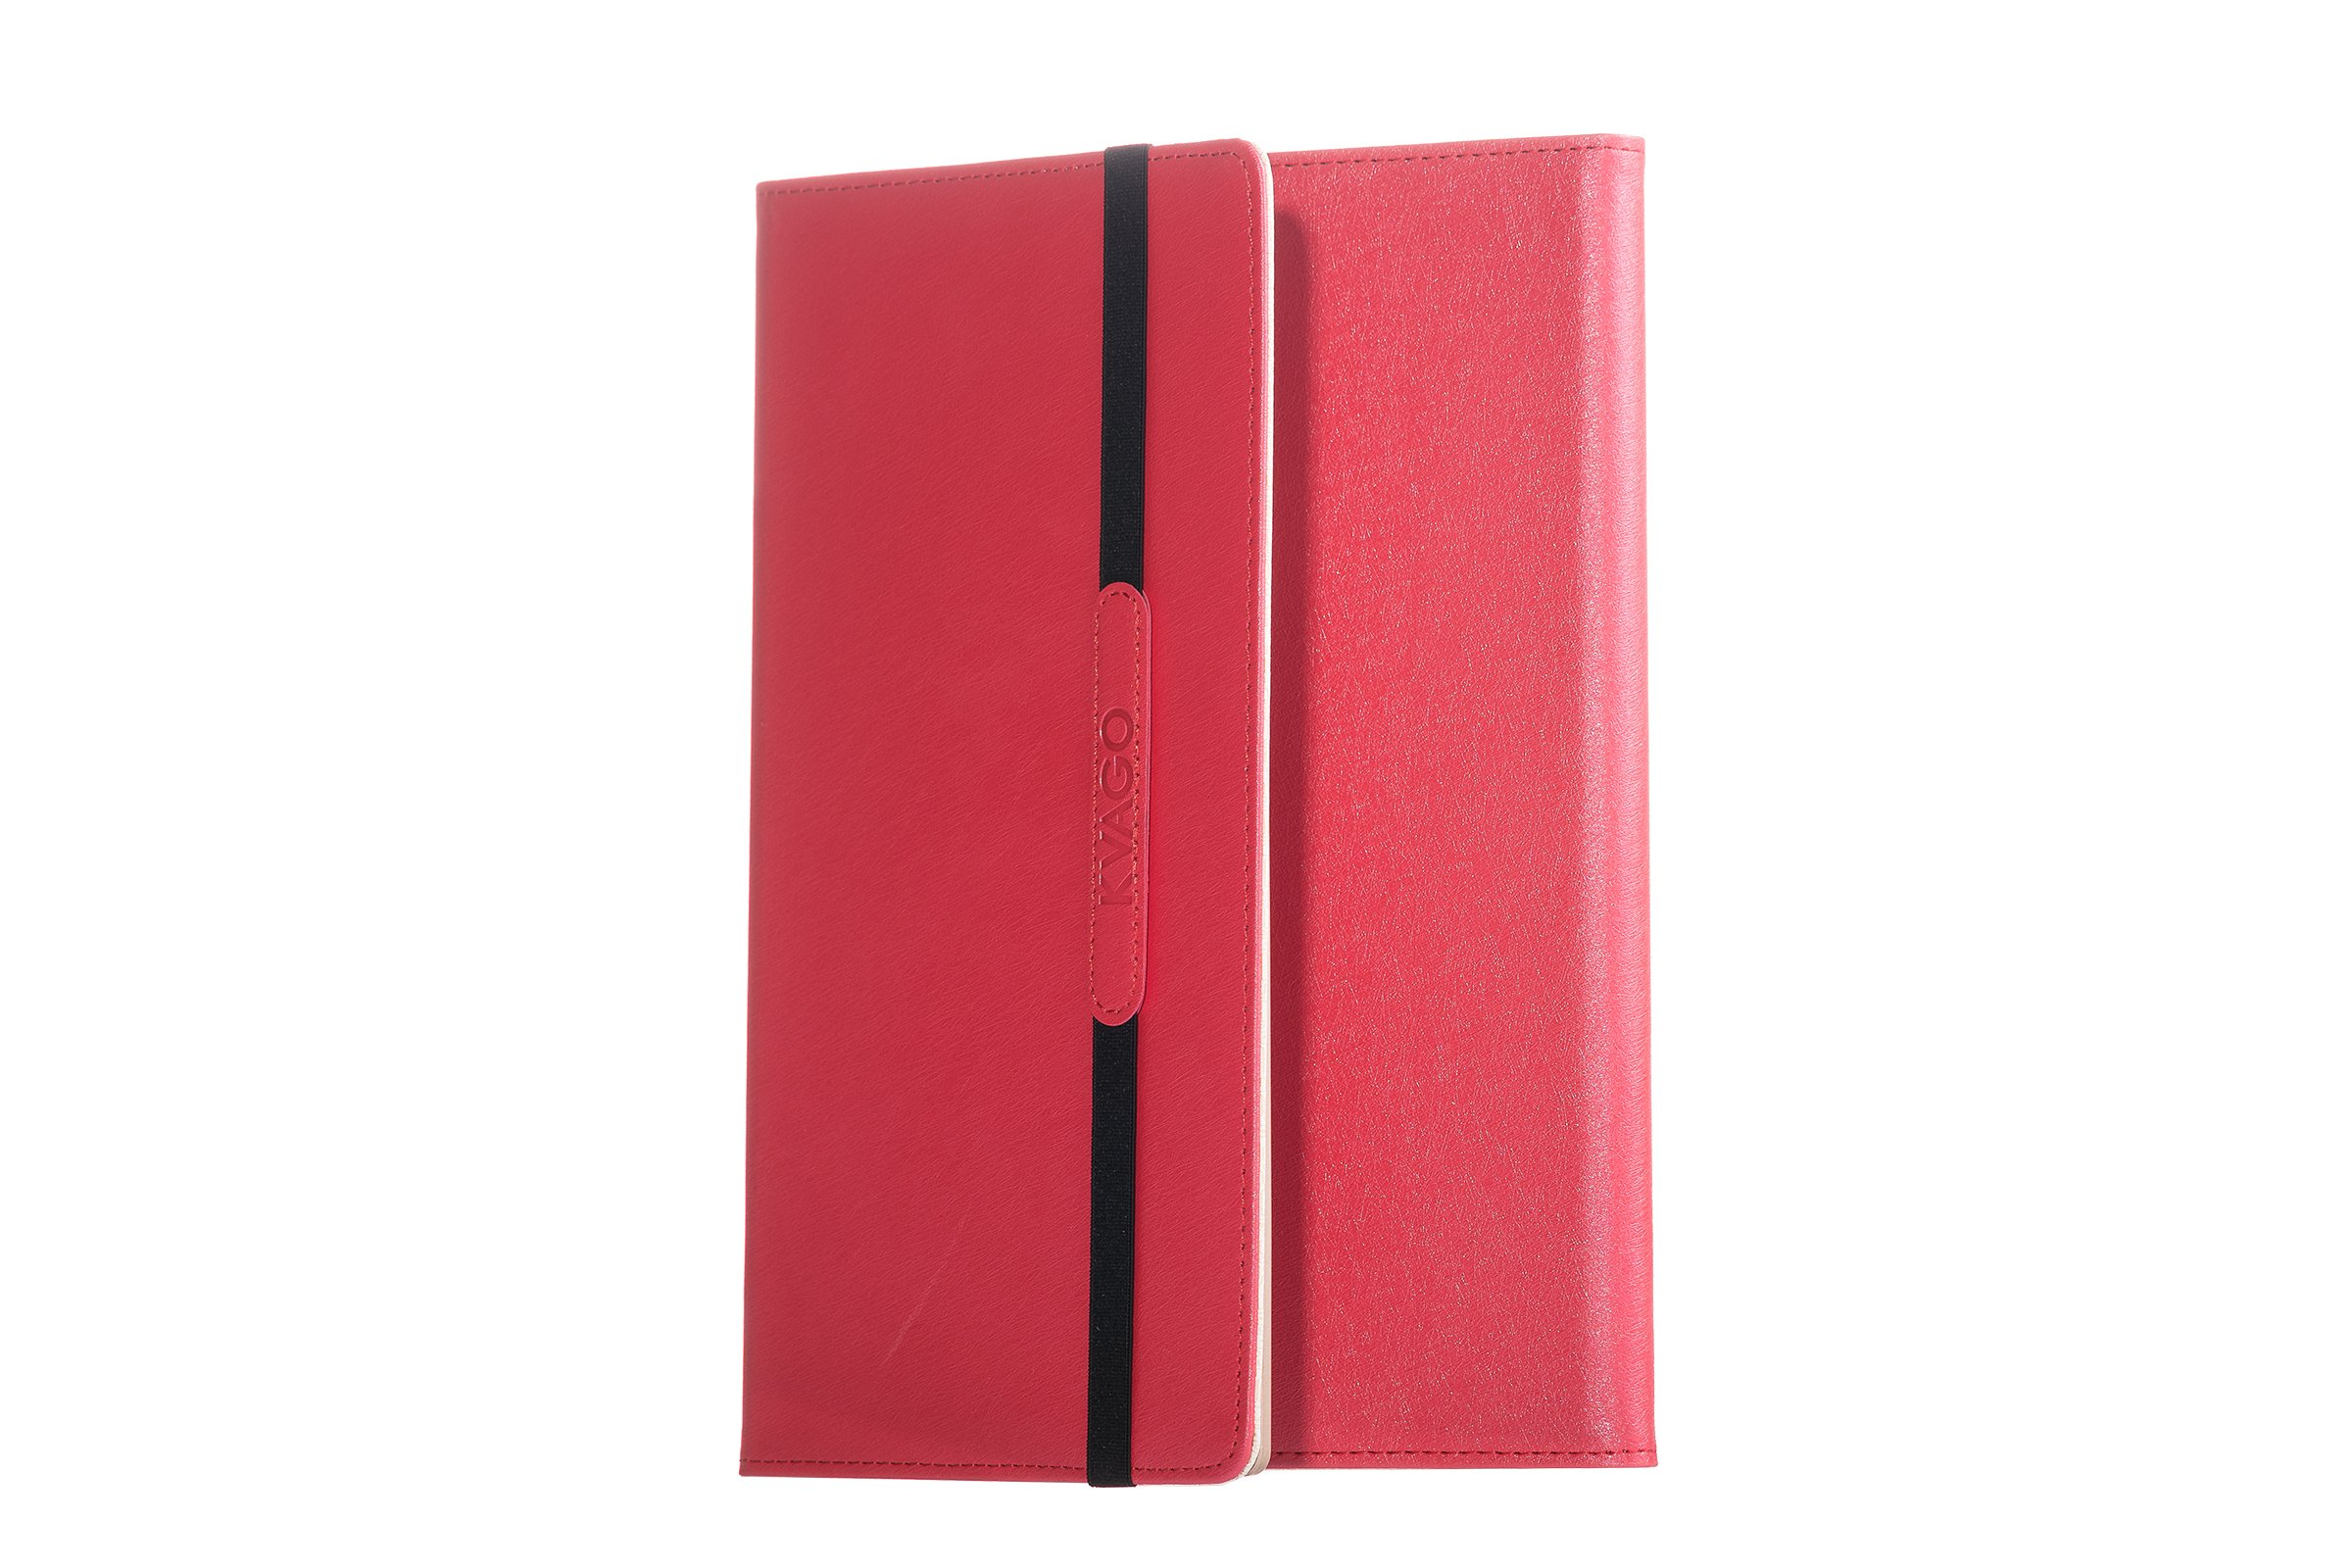 KVAGO IPad Air Case 2 with detachable keyboard Red